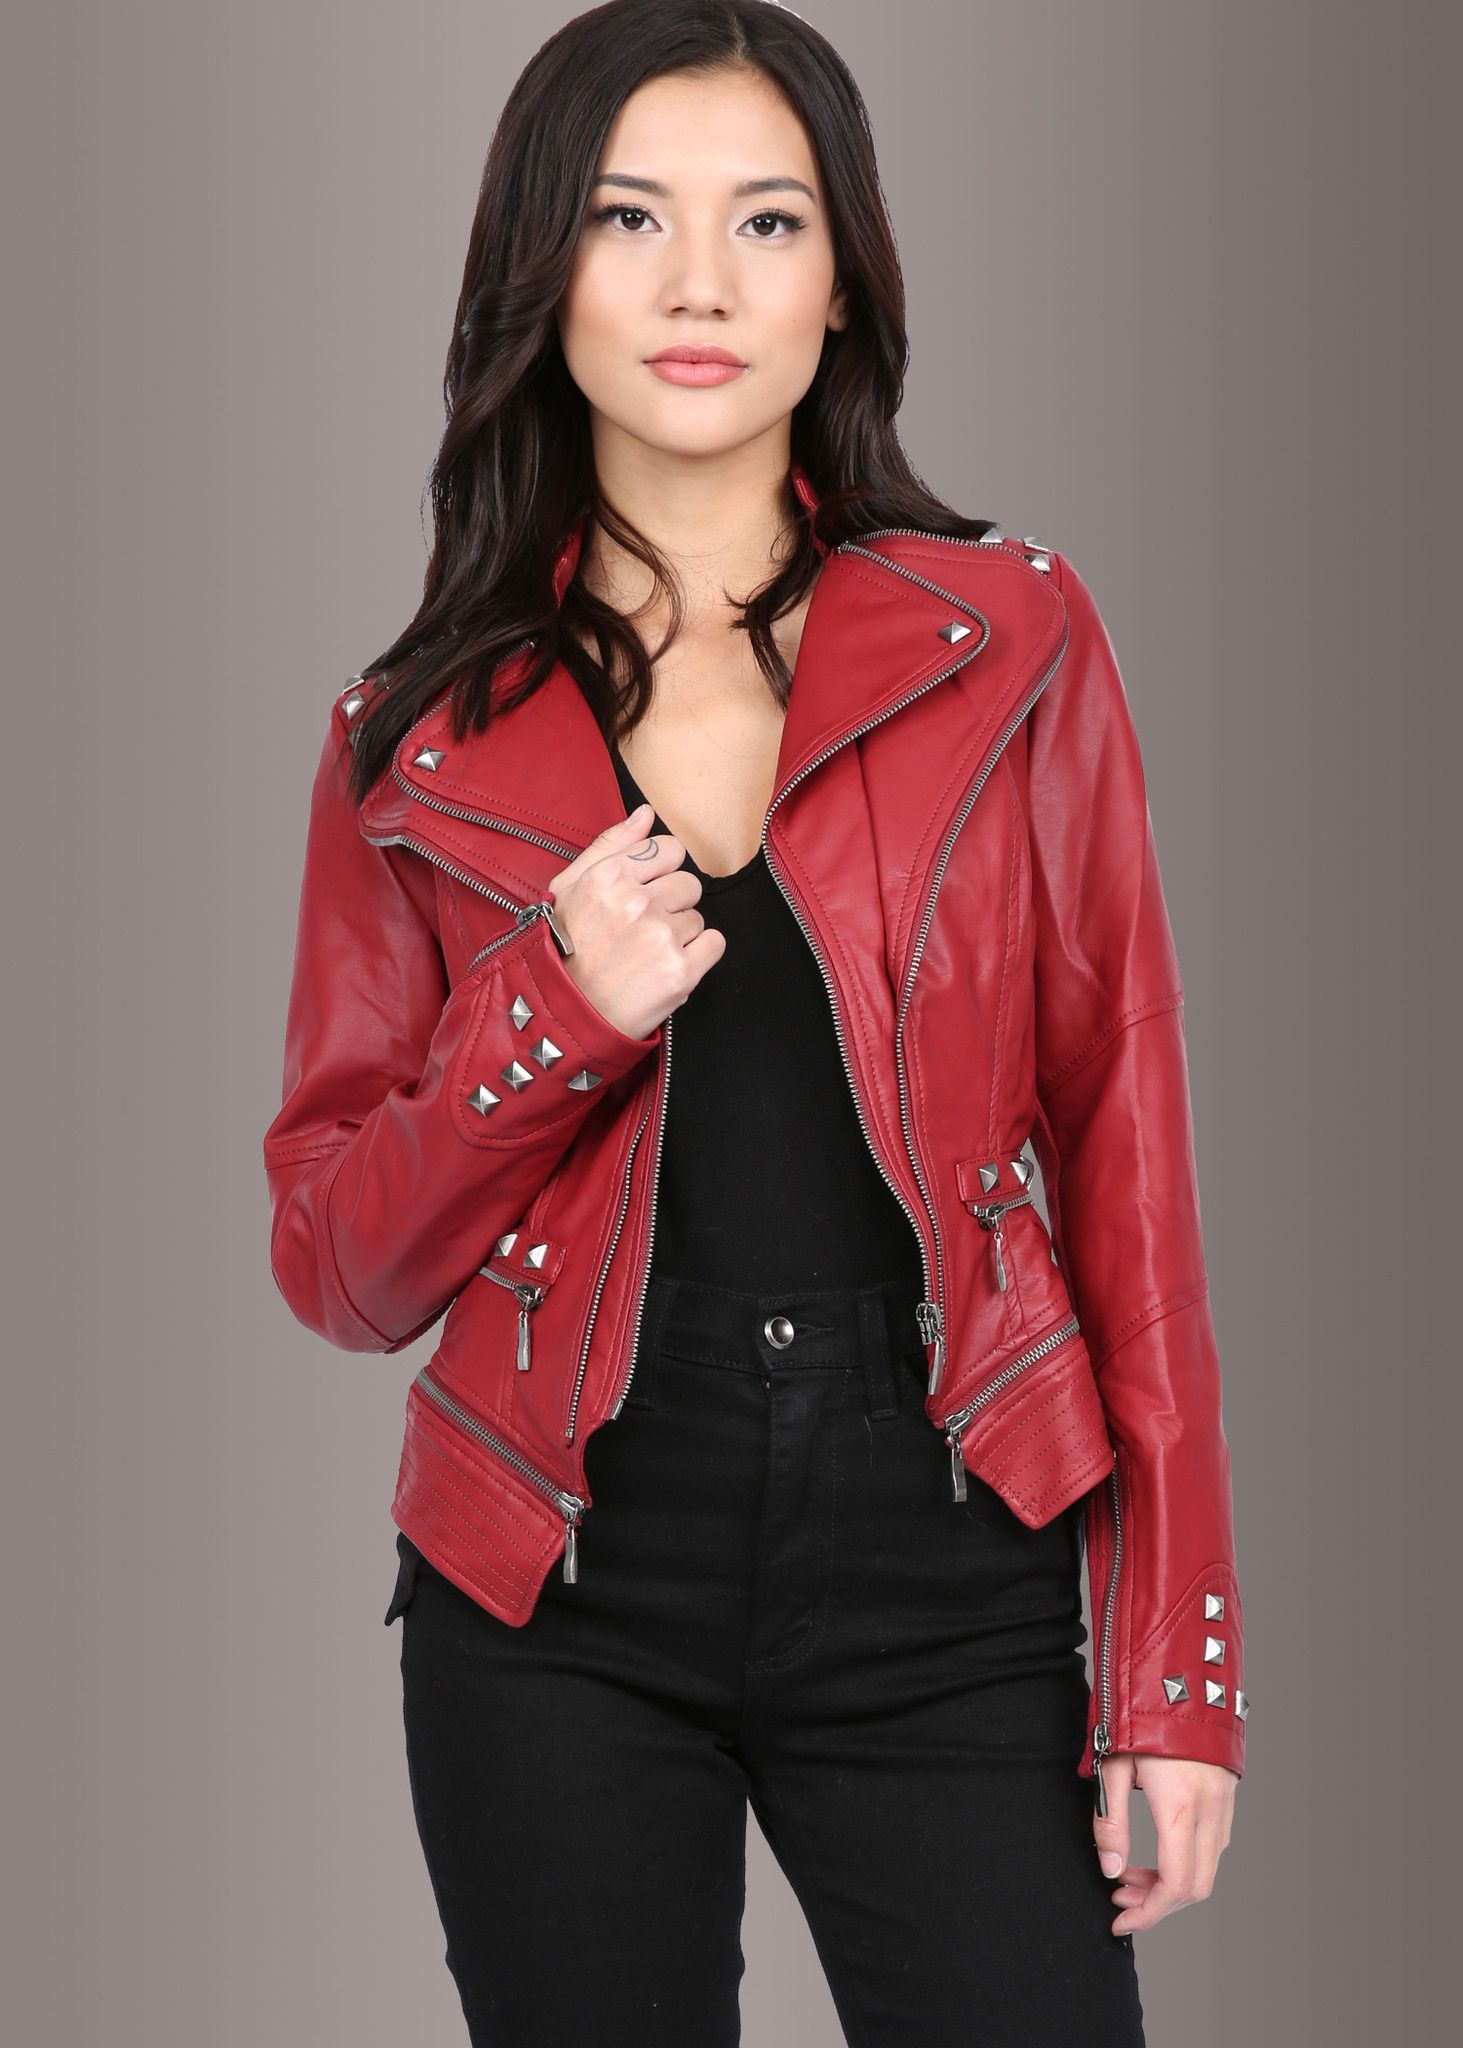 This rocking red studded Punk style PU faux leather moto